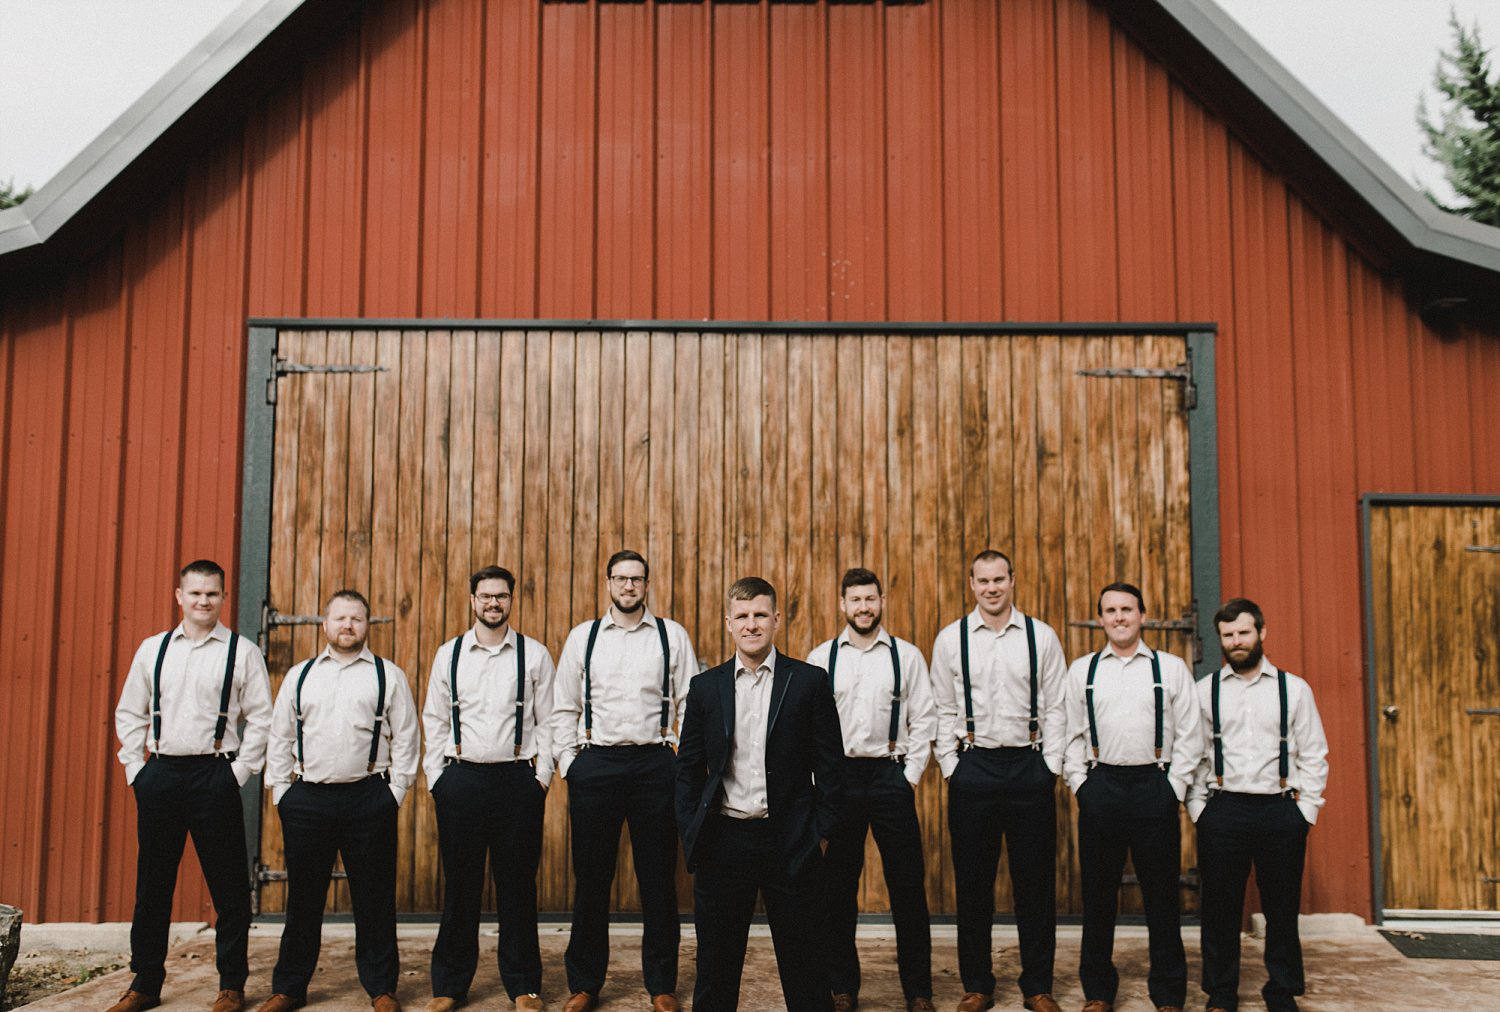 Hollow Hill Farm Event Center Wedding groomsmen with suspenders suites